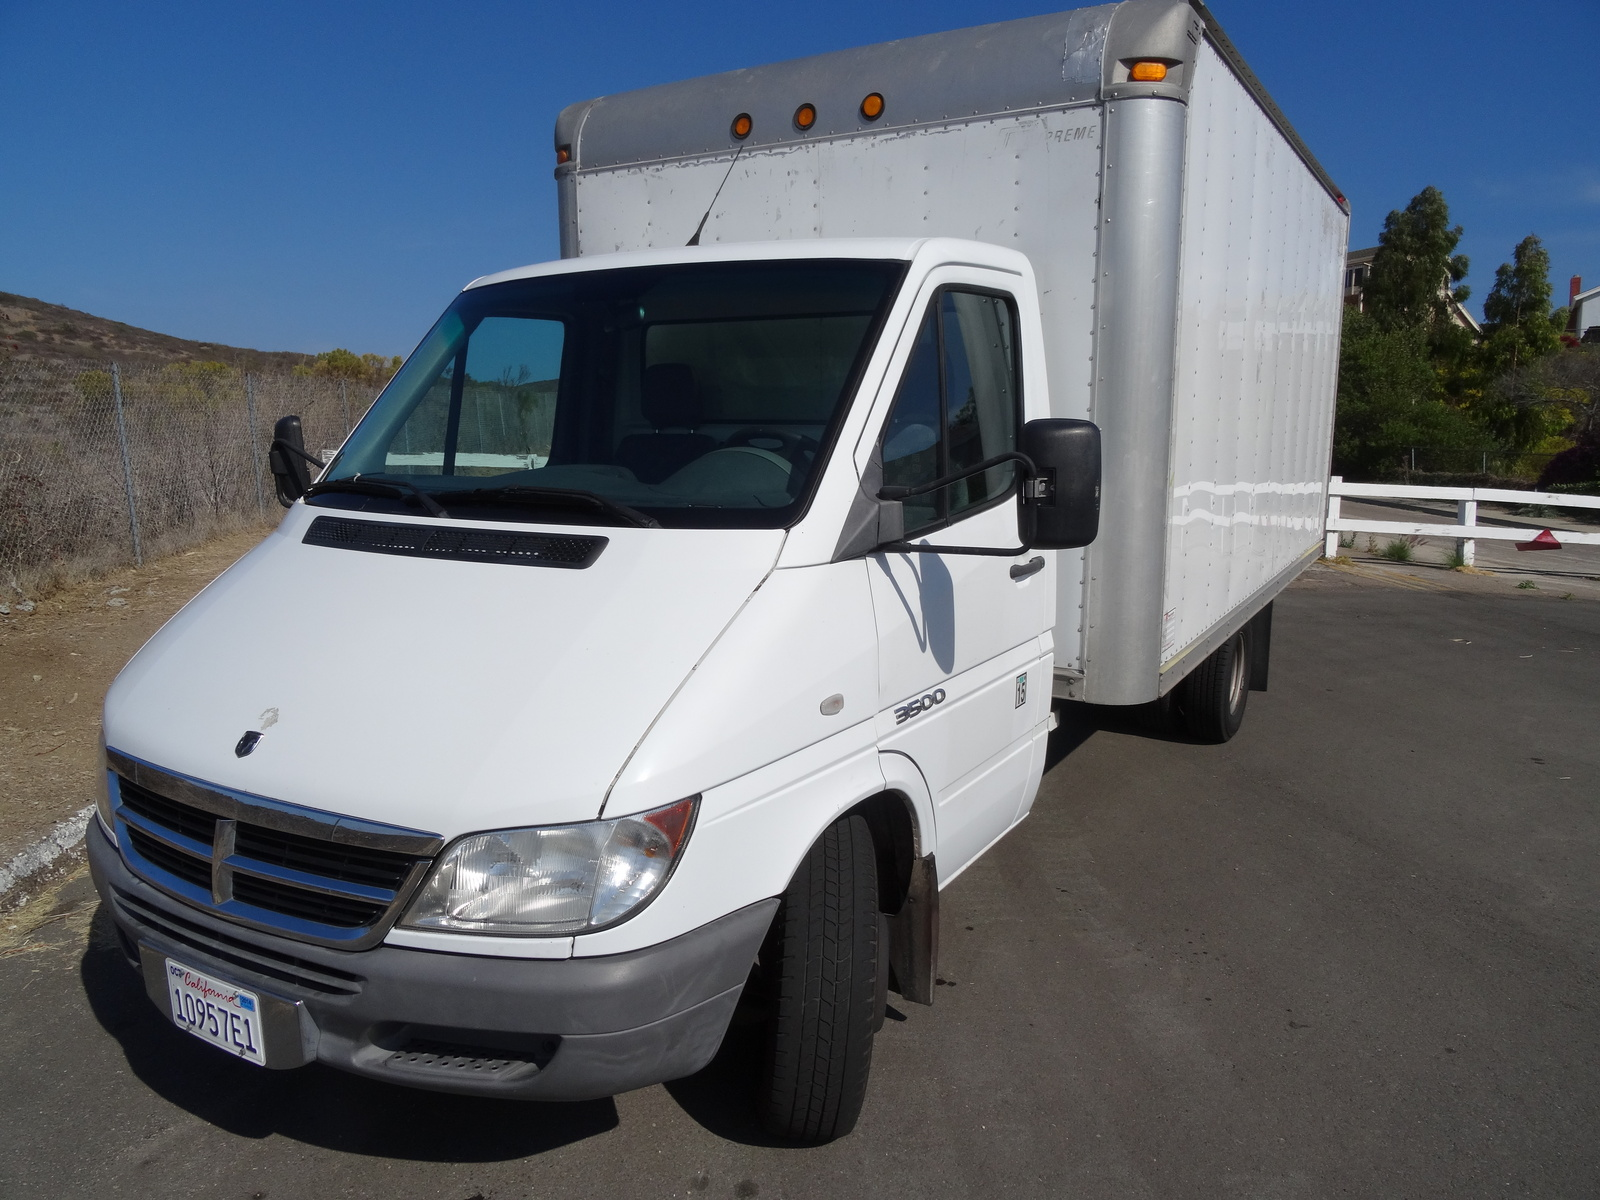 Picture of 2006 Dodge Sprinter Cargo 3500 High Roof 158 WB 3dr Ext Van DRW